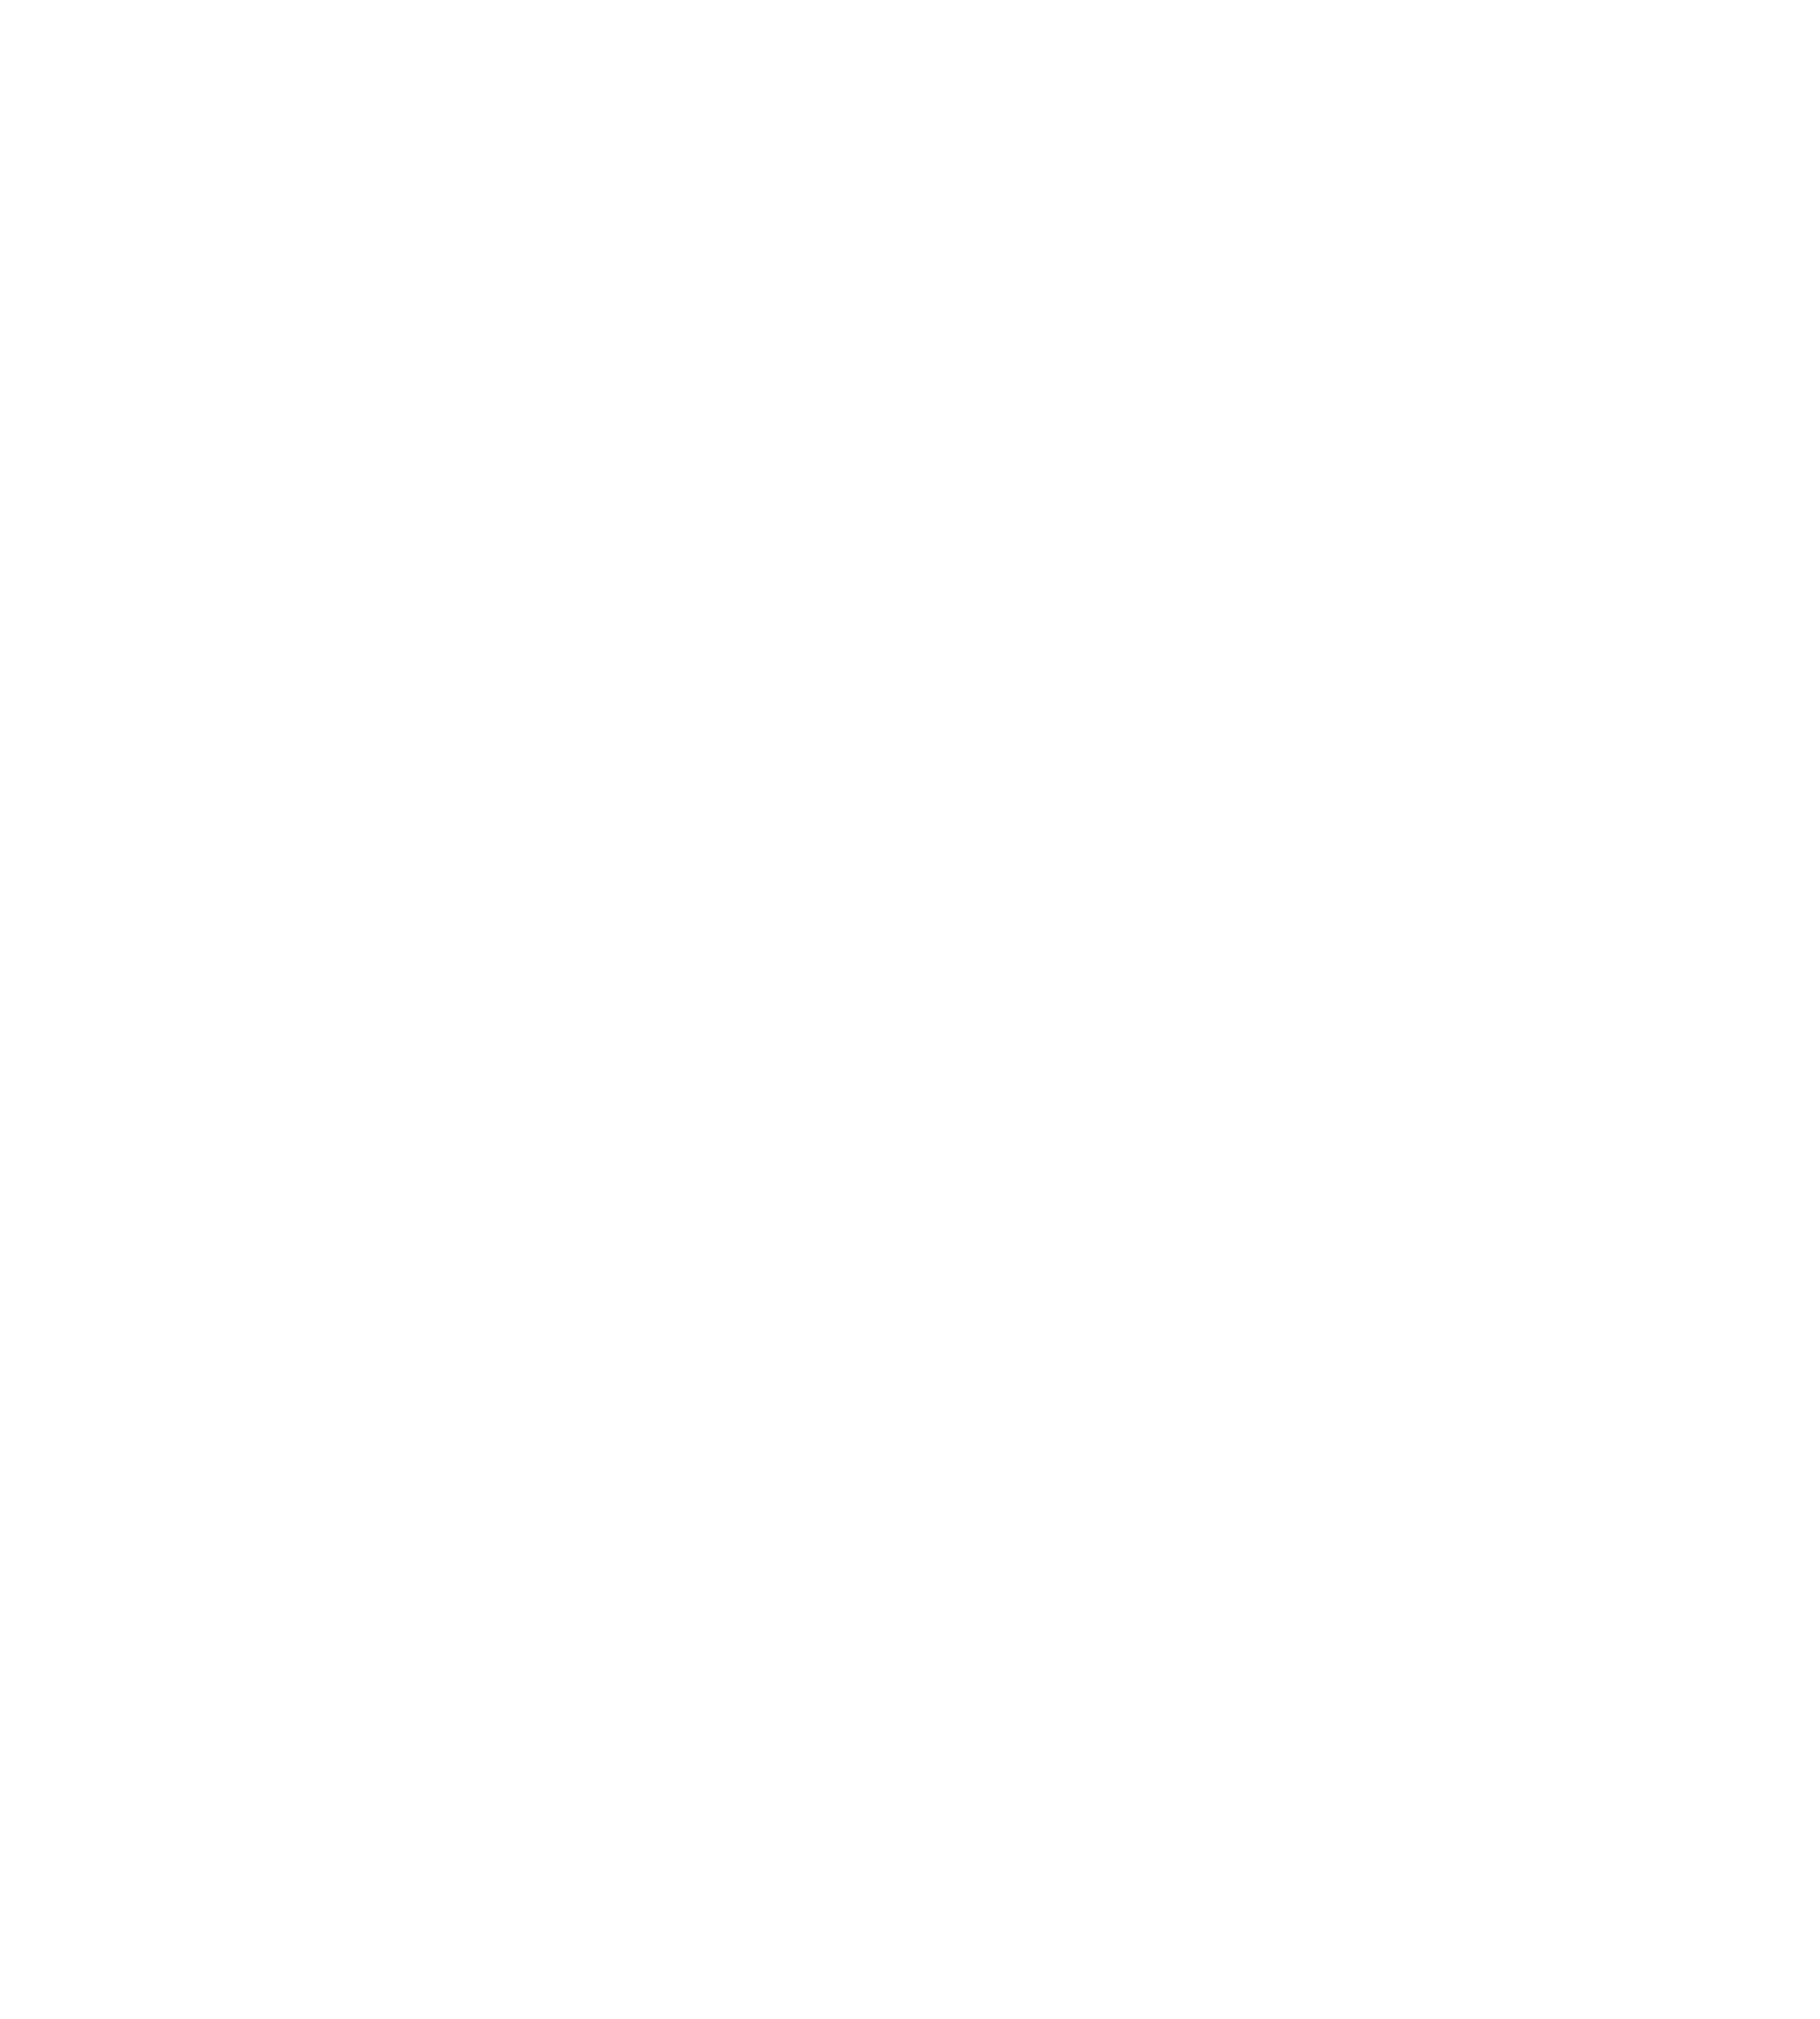 logo happy to meet you